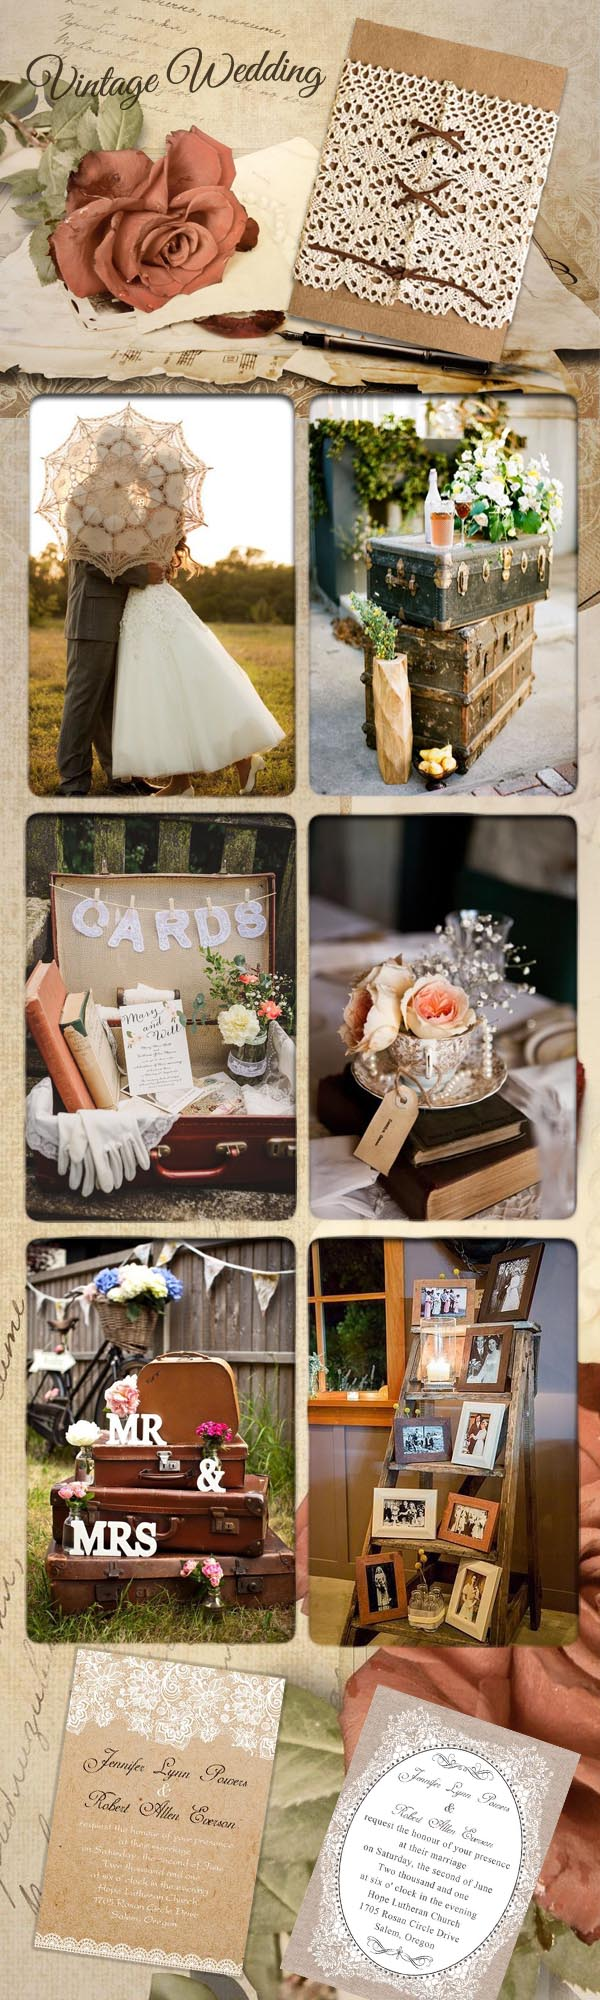 vintage wedding ideas and vintage wedding invitations